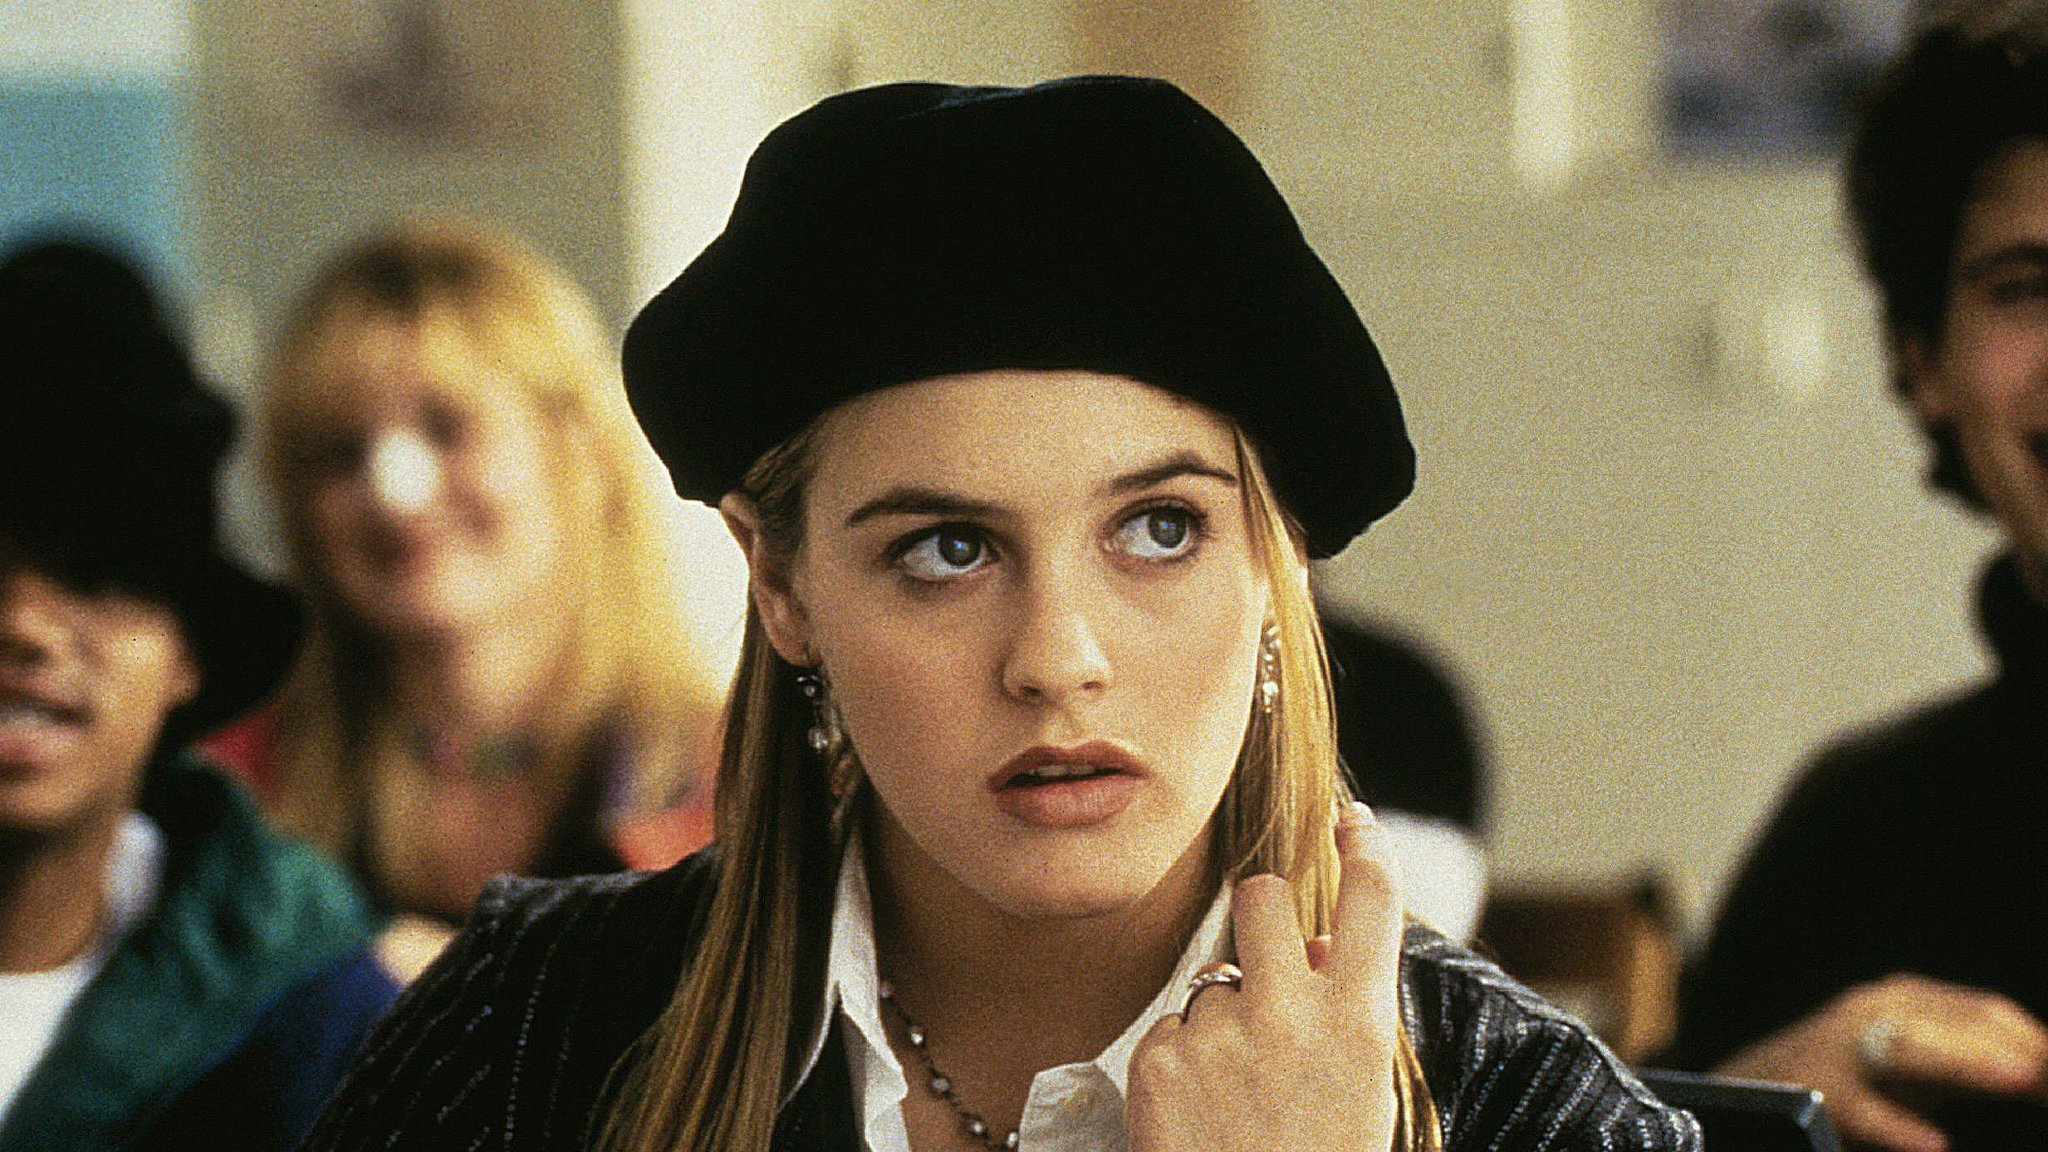 The exact lipstick Alicia Silverstone wore as Cher in Clueless